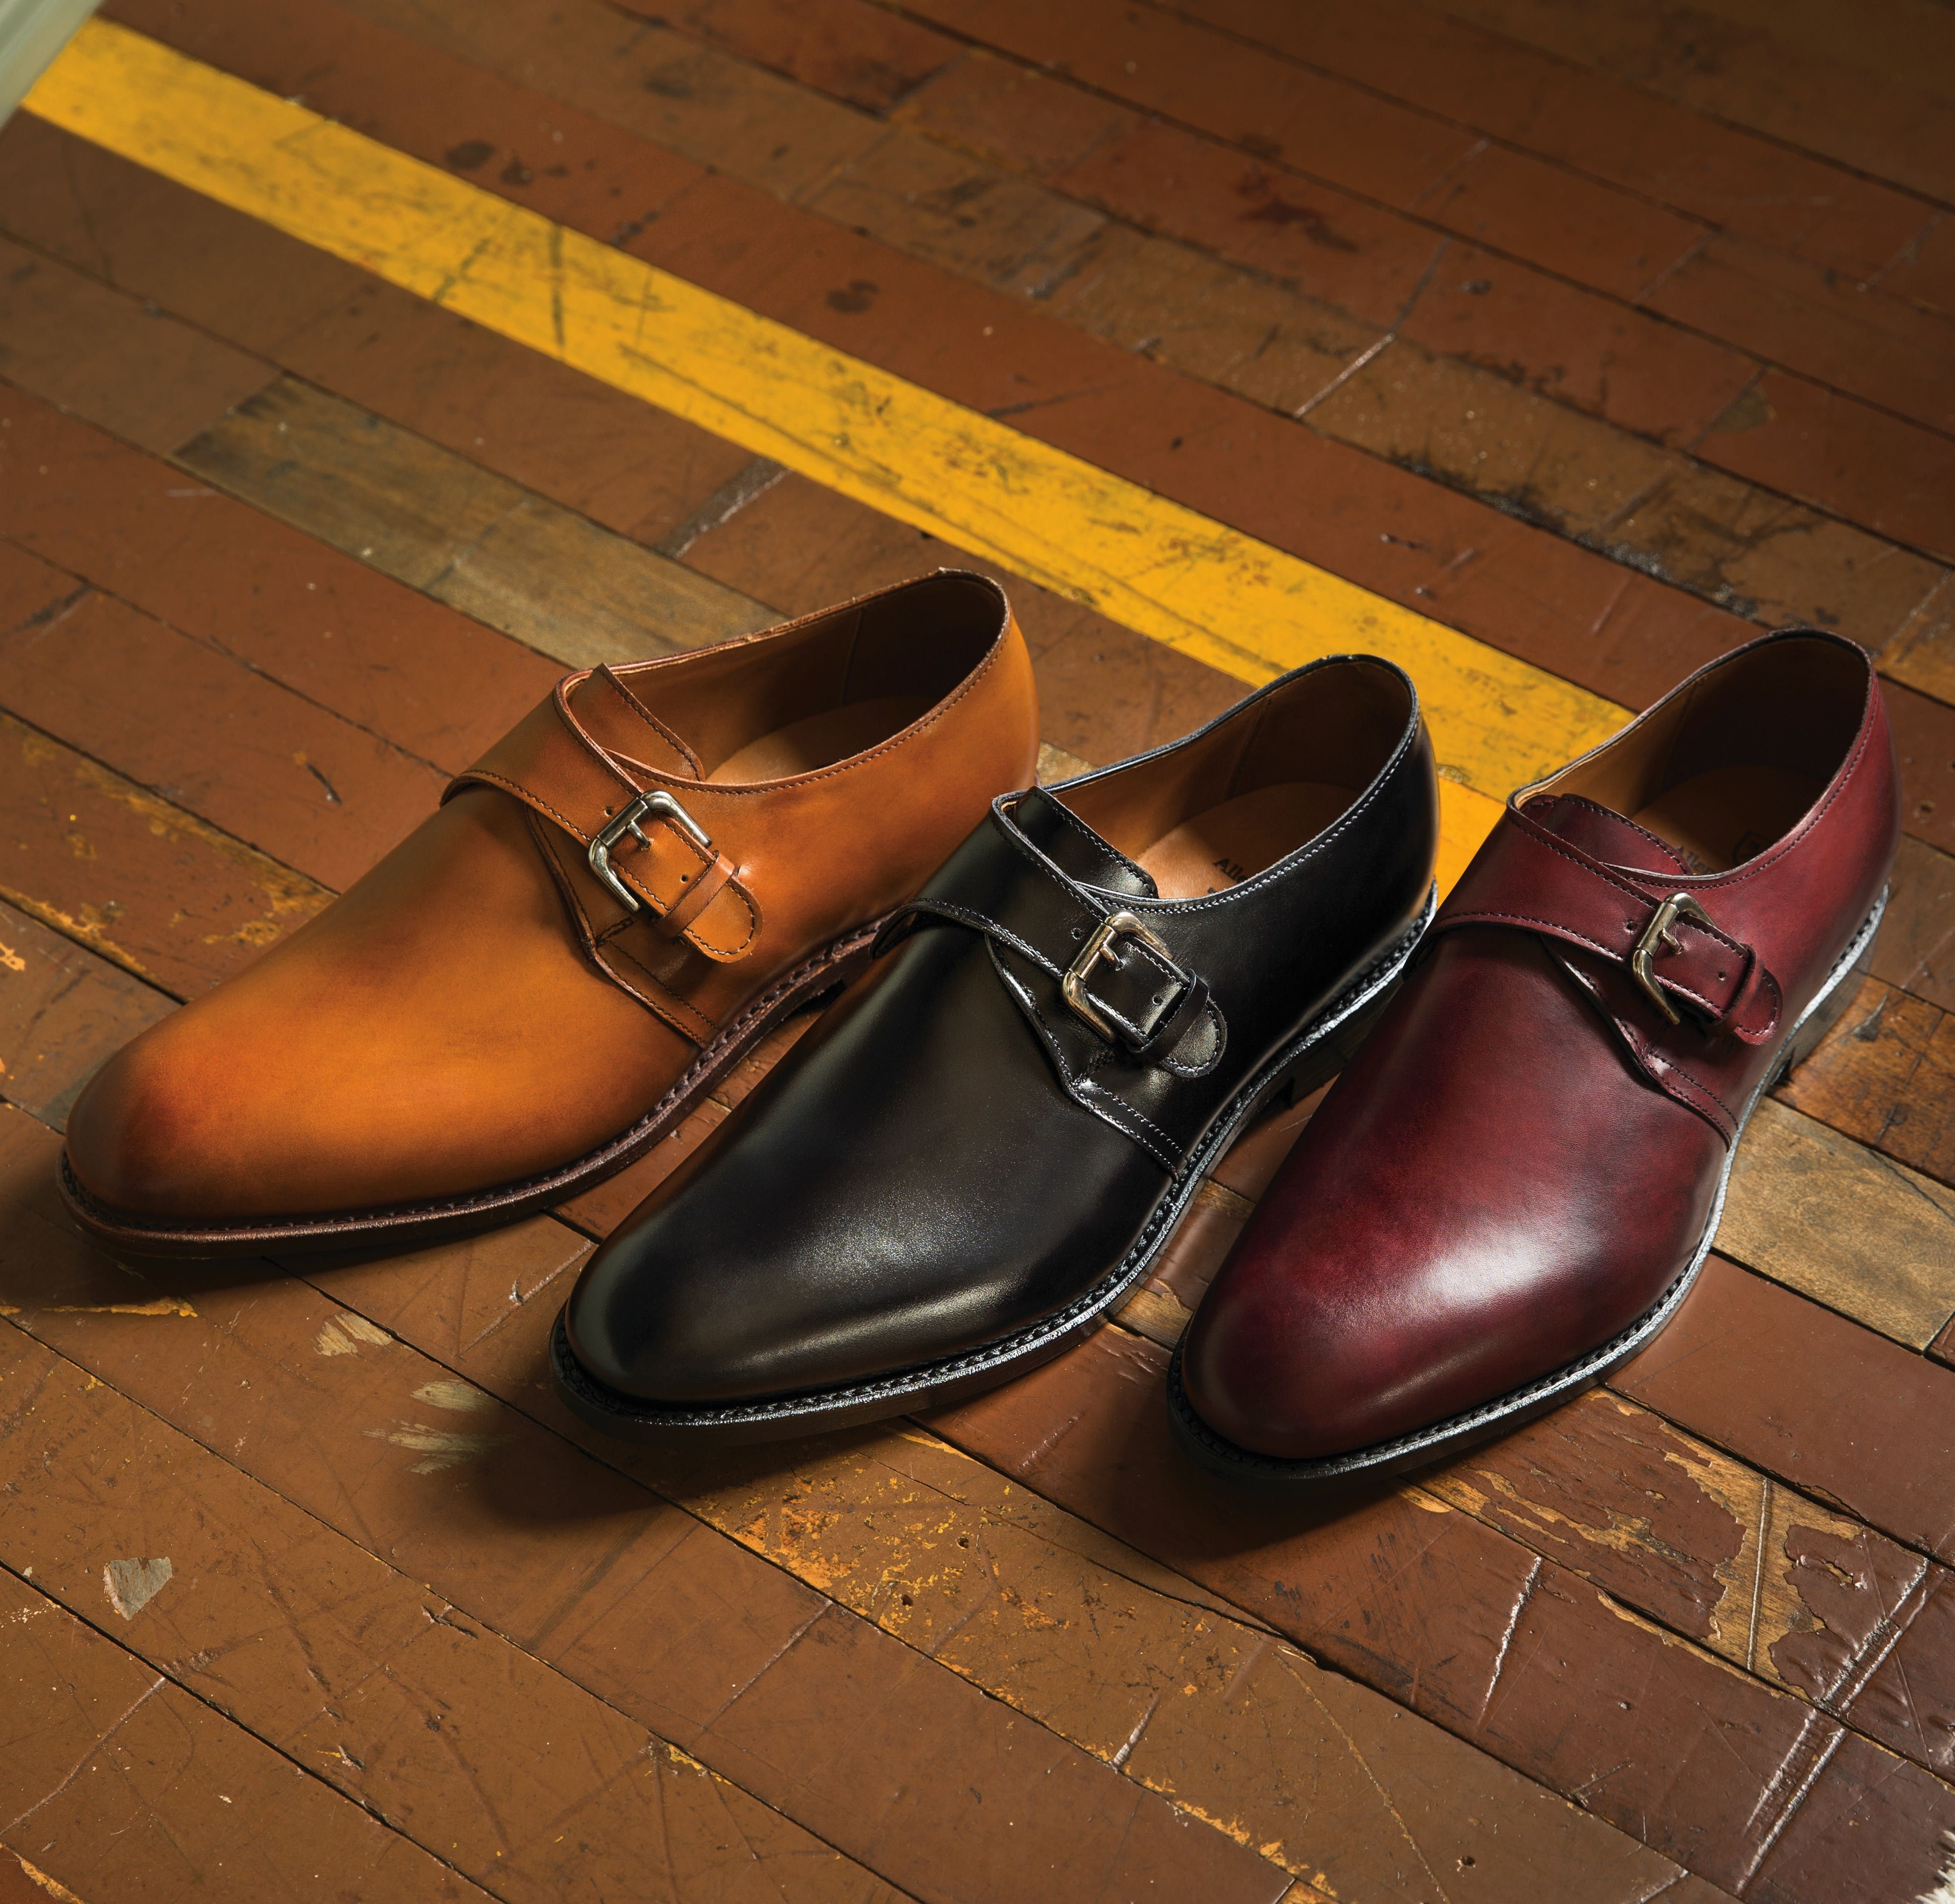 Allen Warwick Porn it's time for style. get the #warwick monk straps for $279